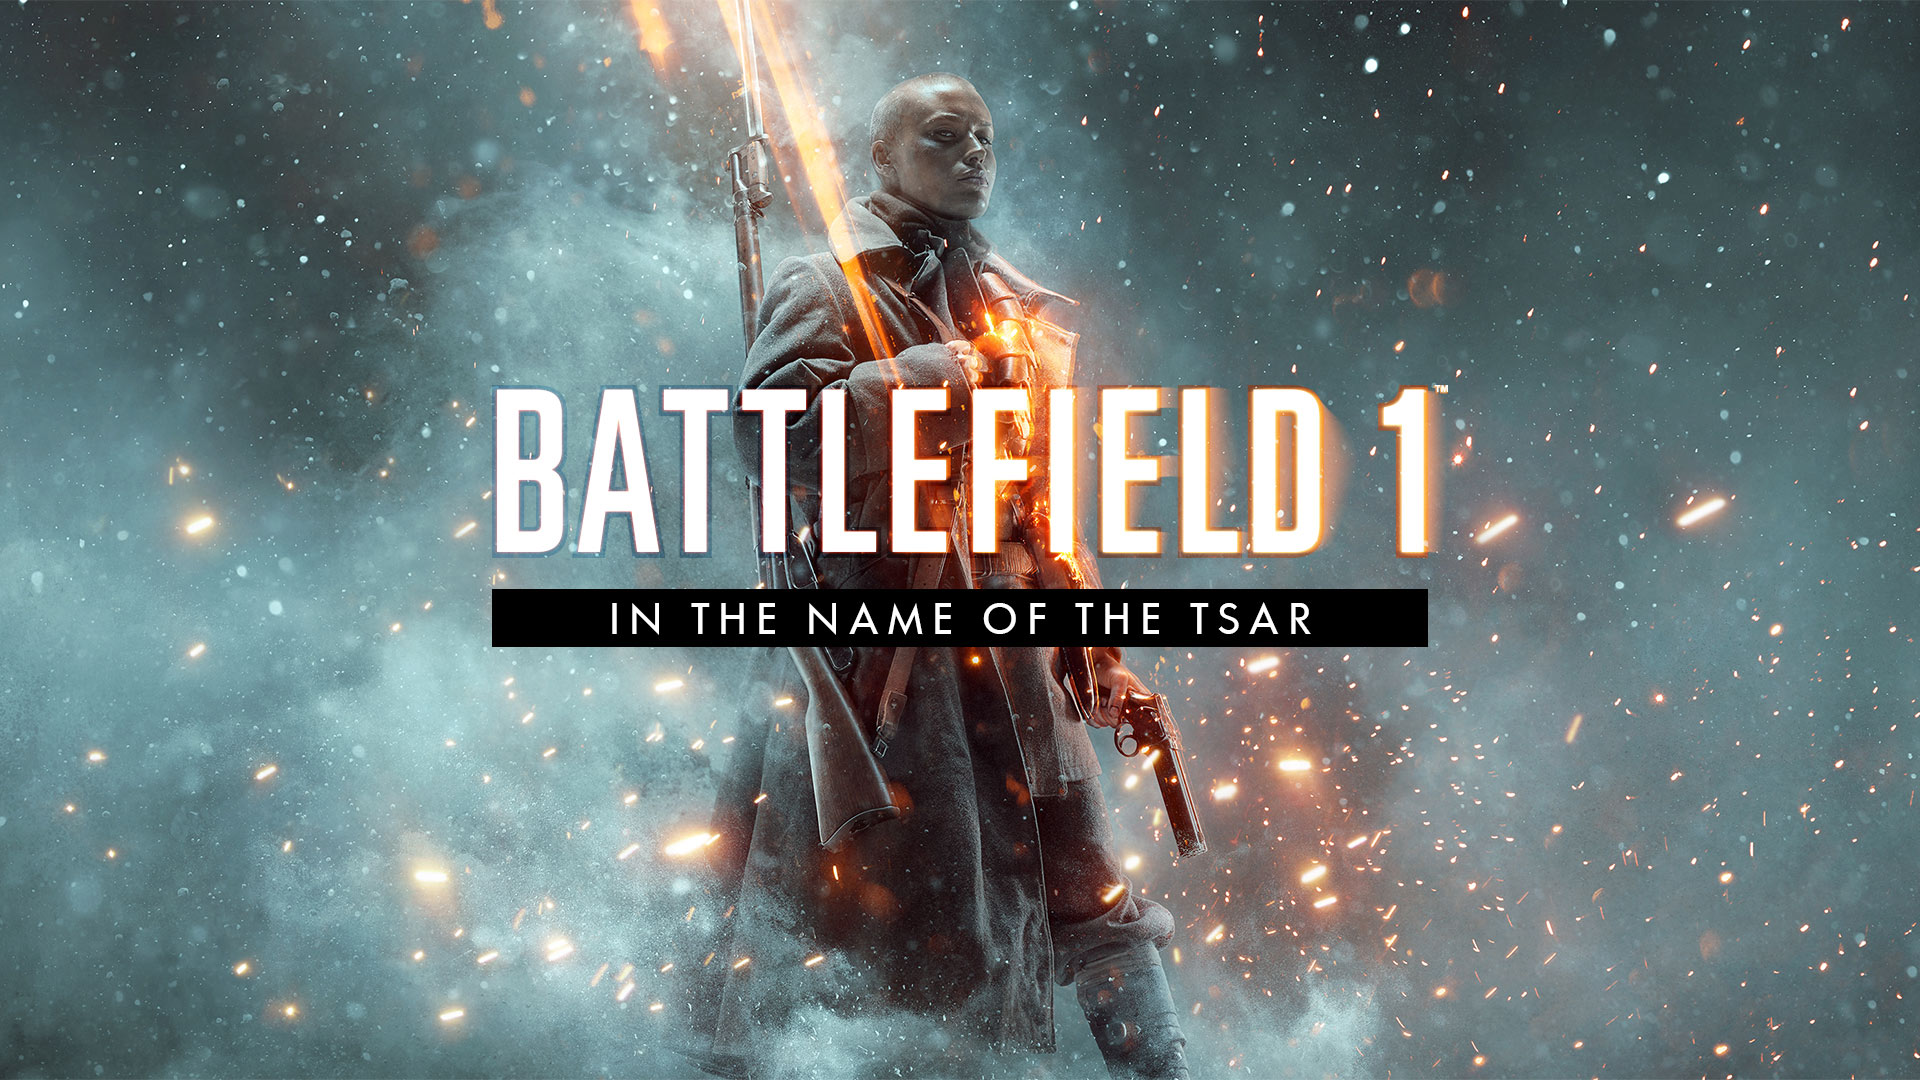 Battlefield-1-In-The-Name-of-The-Tsar-1.jpg?fit=1920%2C1080&ssl=1